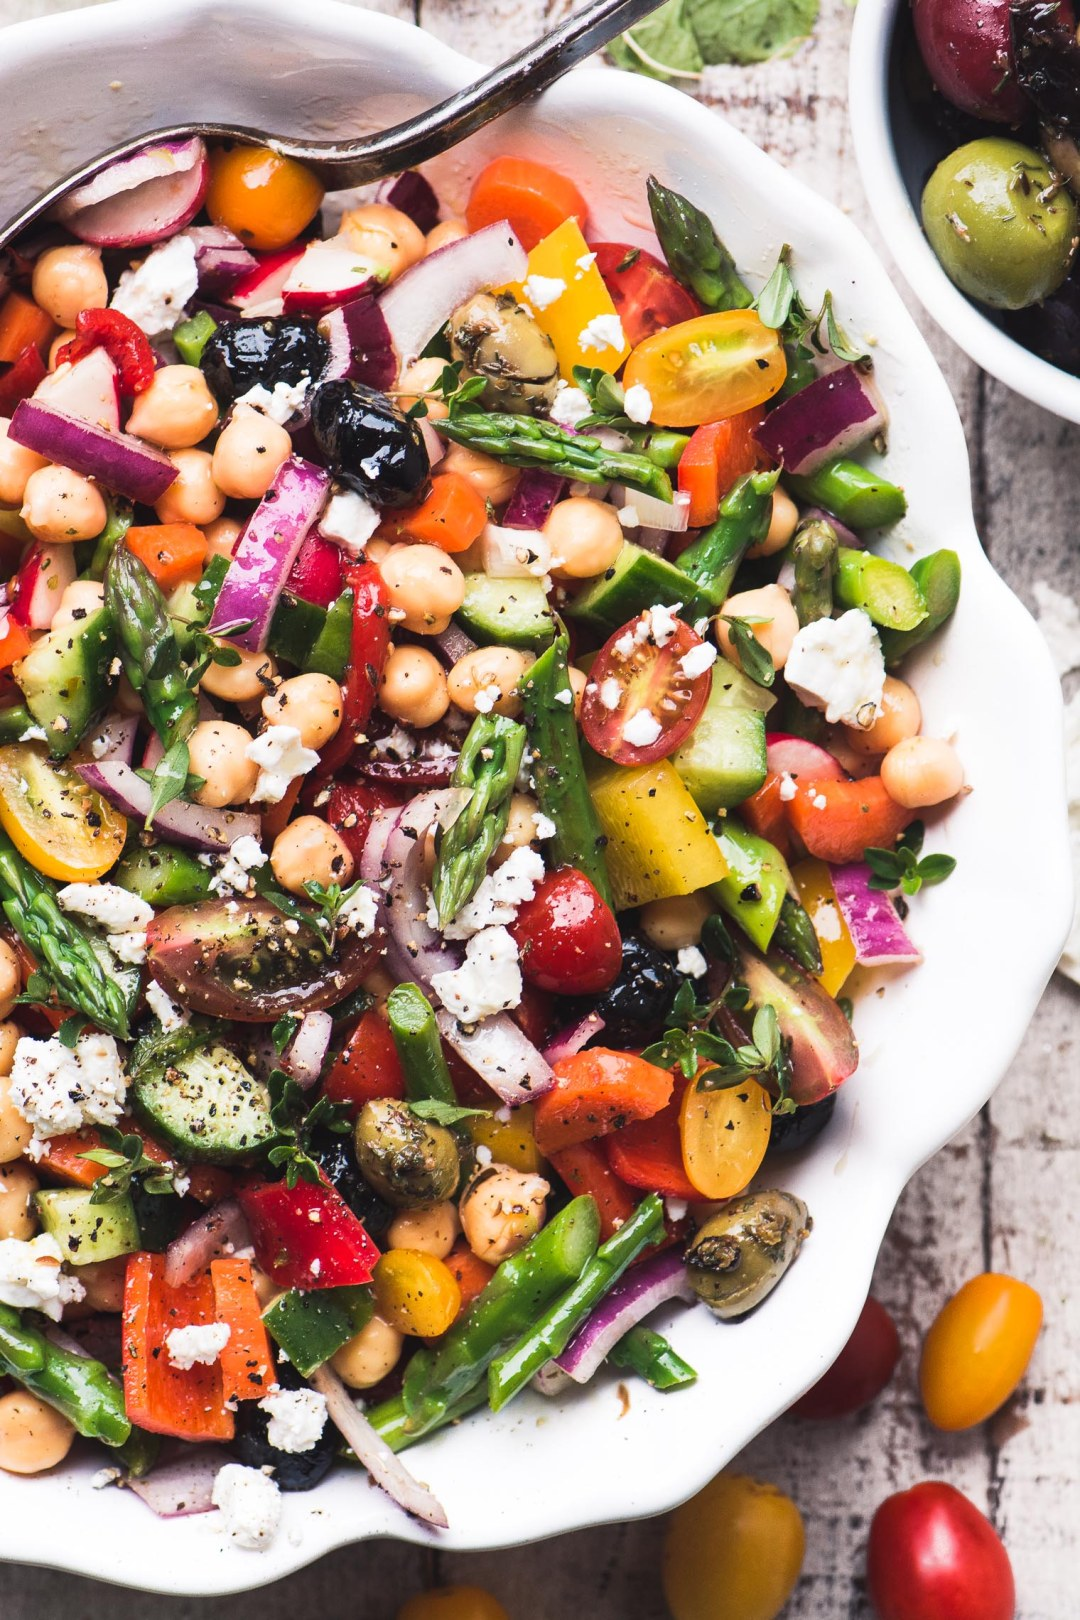 A colorful and healthy Chopped Asparagus Salad on a wooden table with spoon